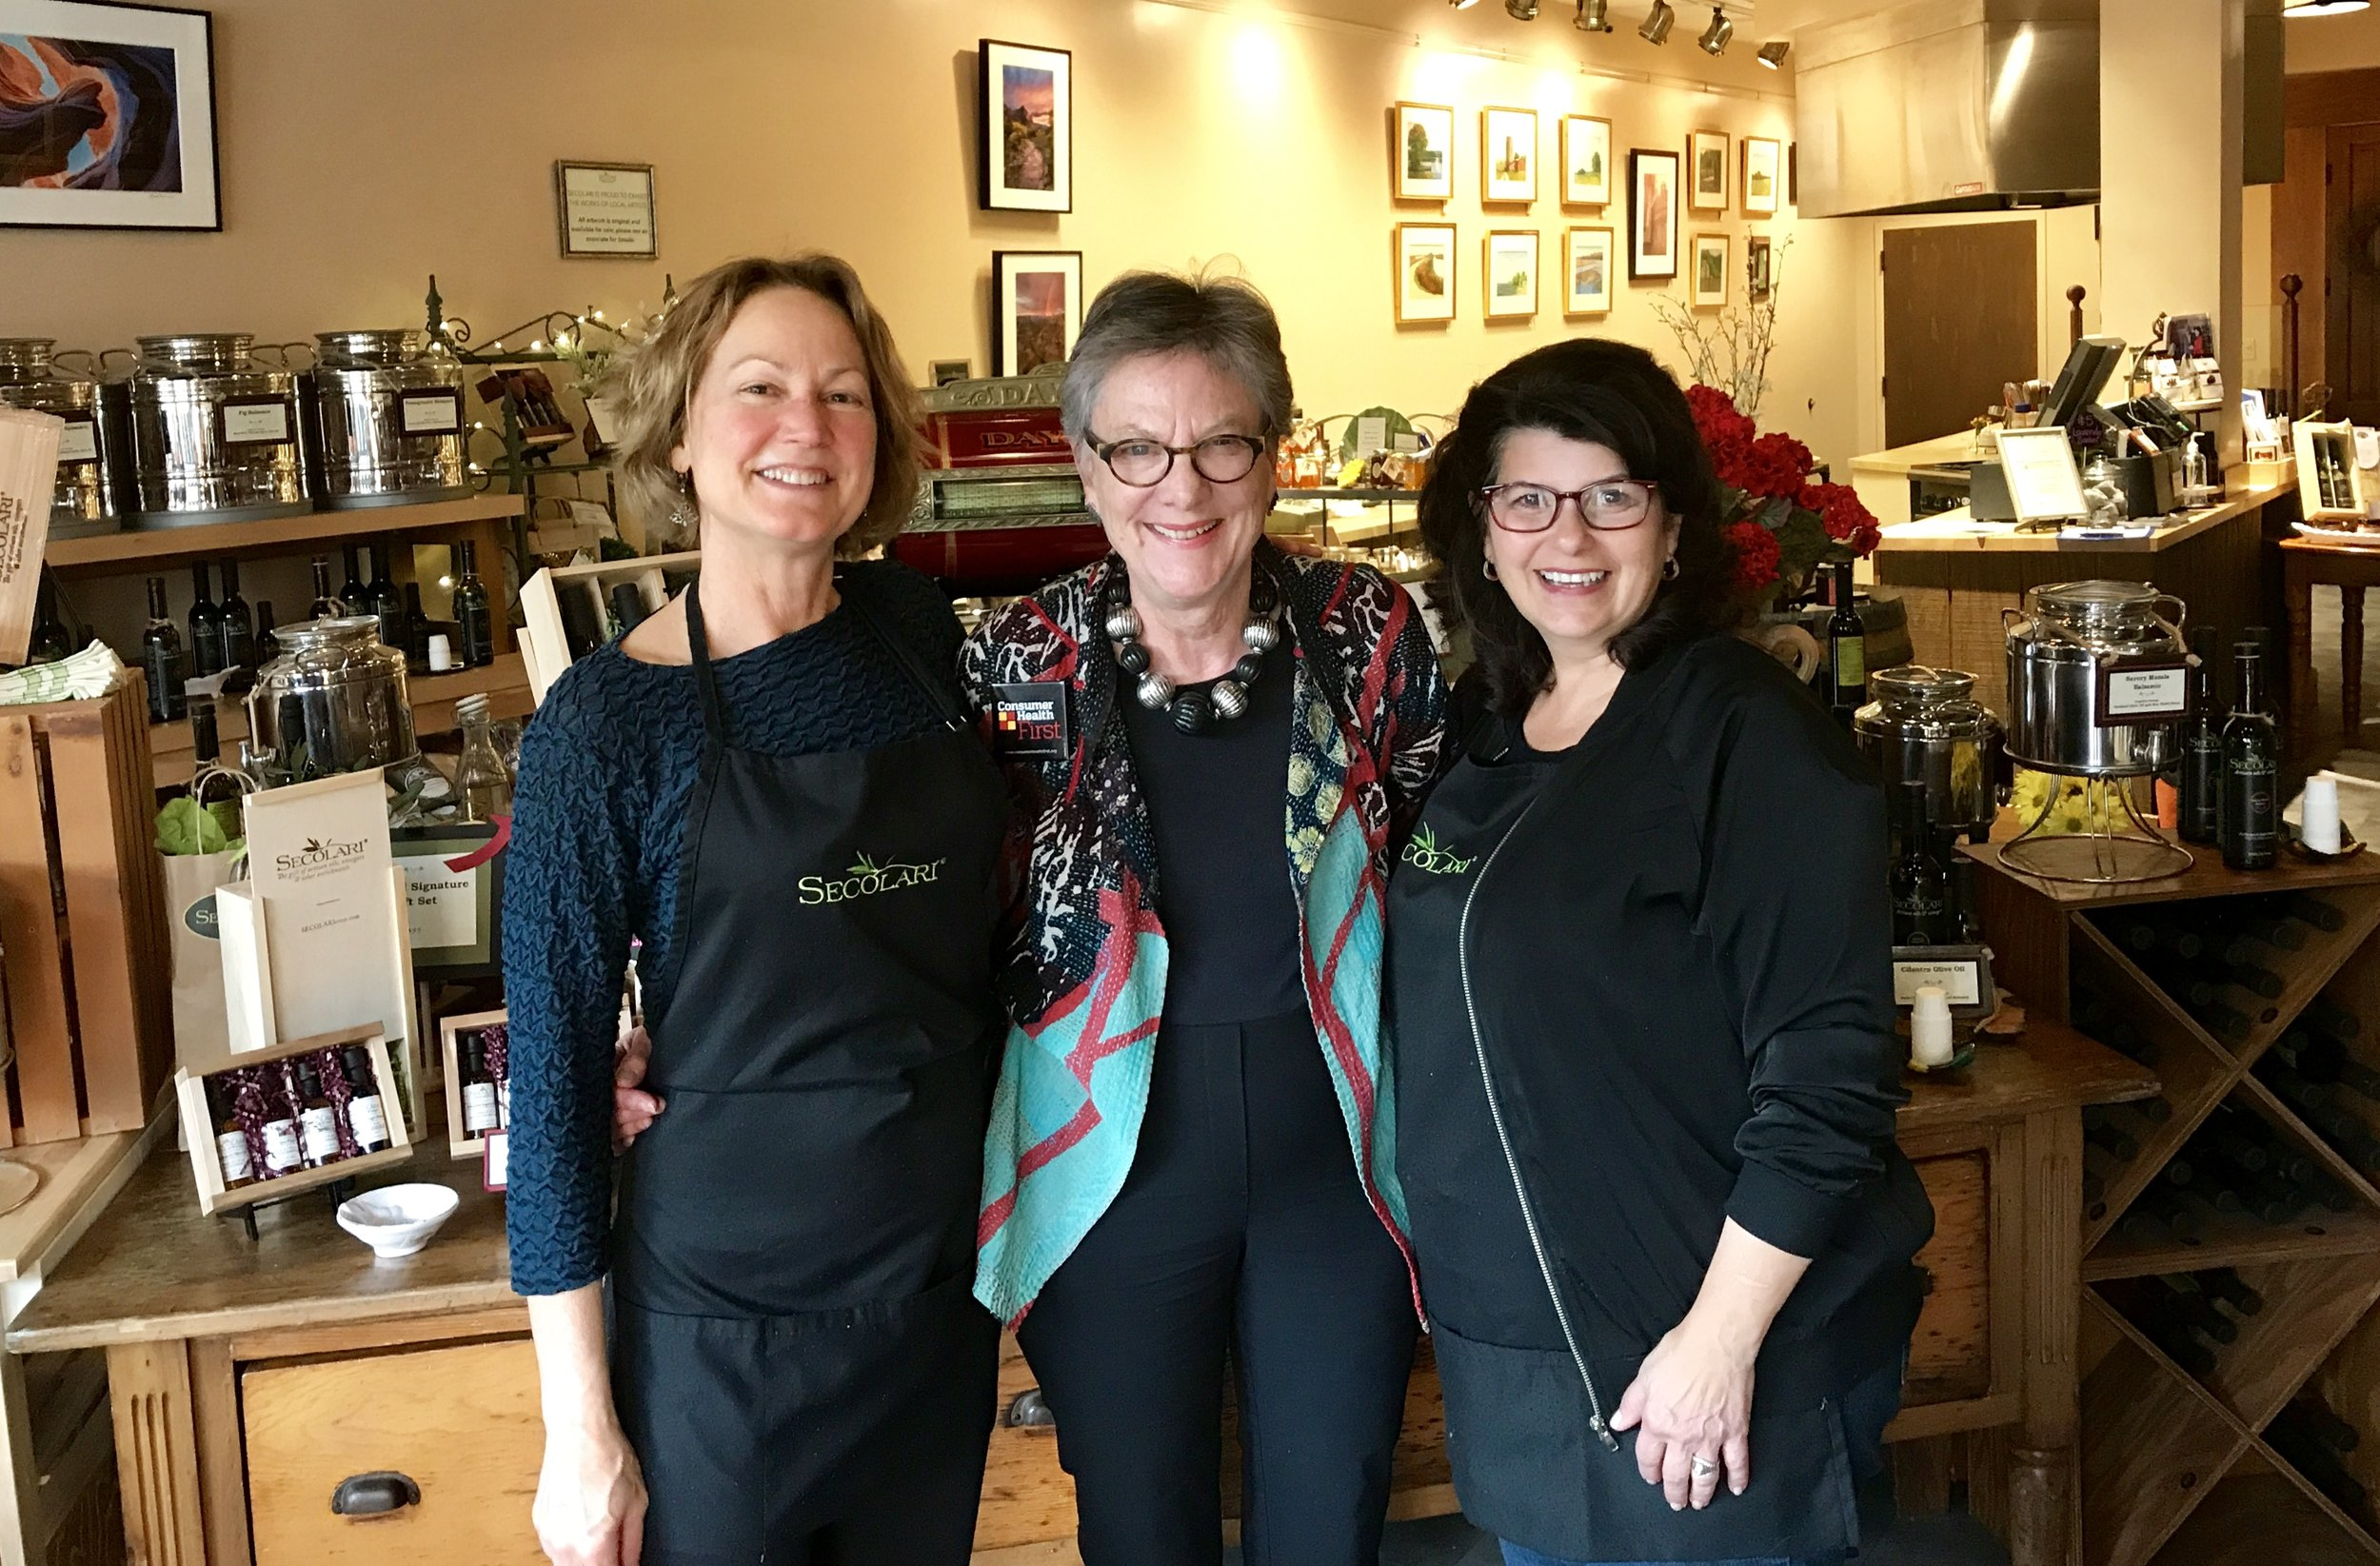 L-R: Secolari store manager, Stephanie; Consumer Health First President, Leni Preston; and Secolari owner, Mary de Rosa